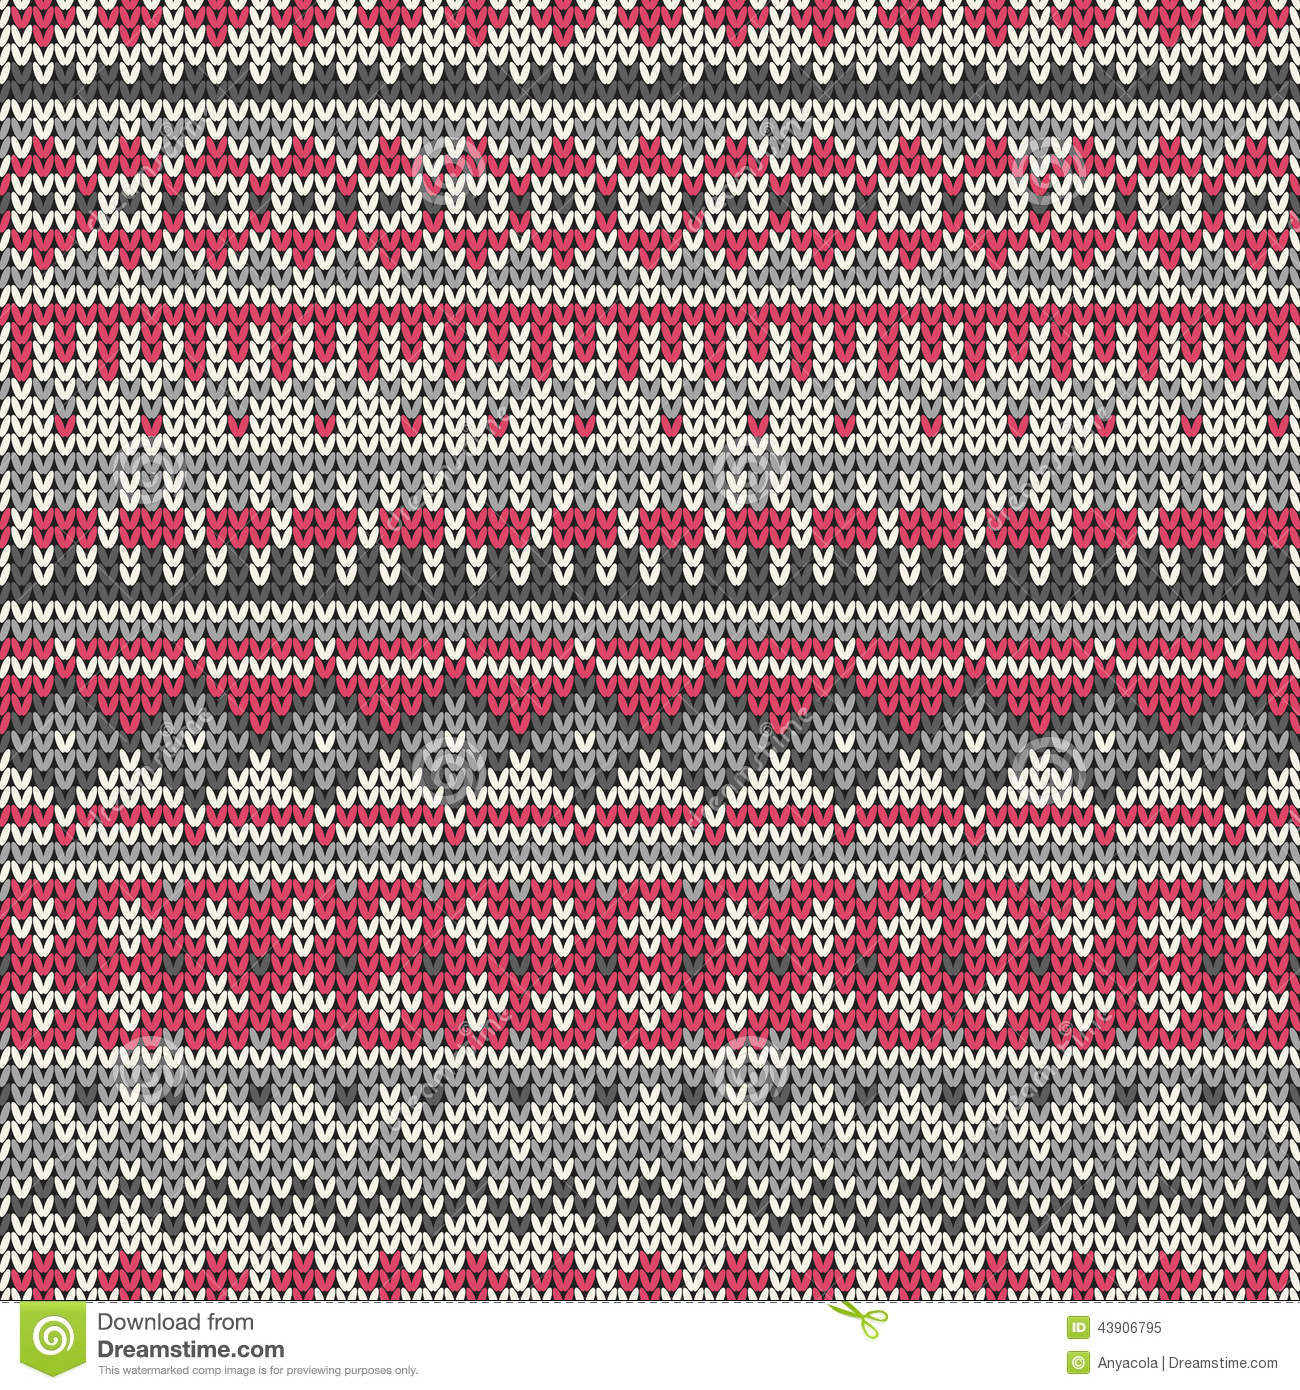 Fair Isle knitting patterns seamless knitted pattern in